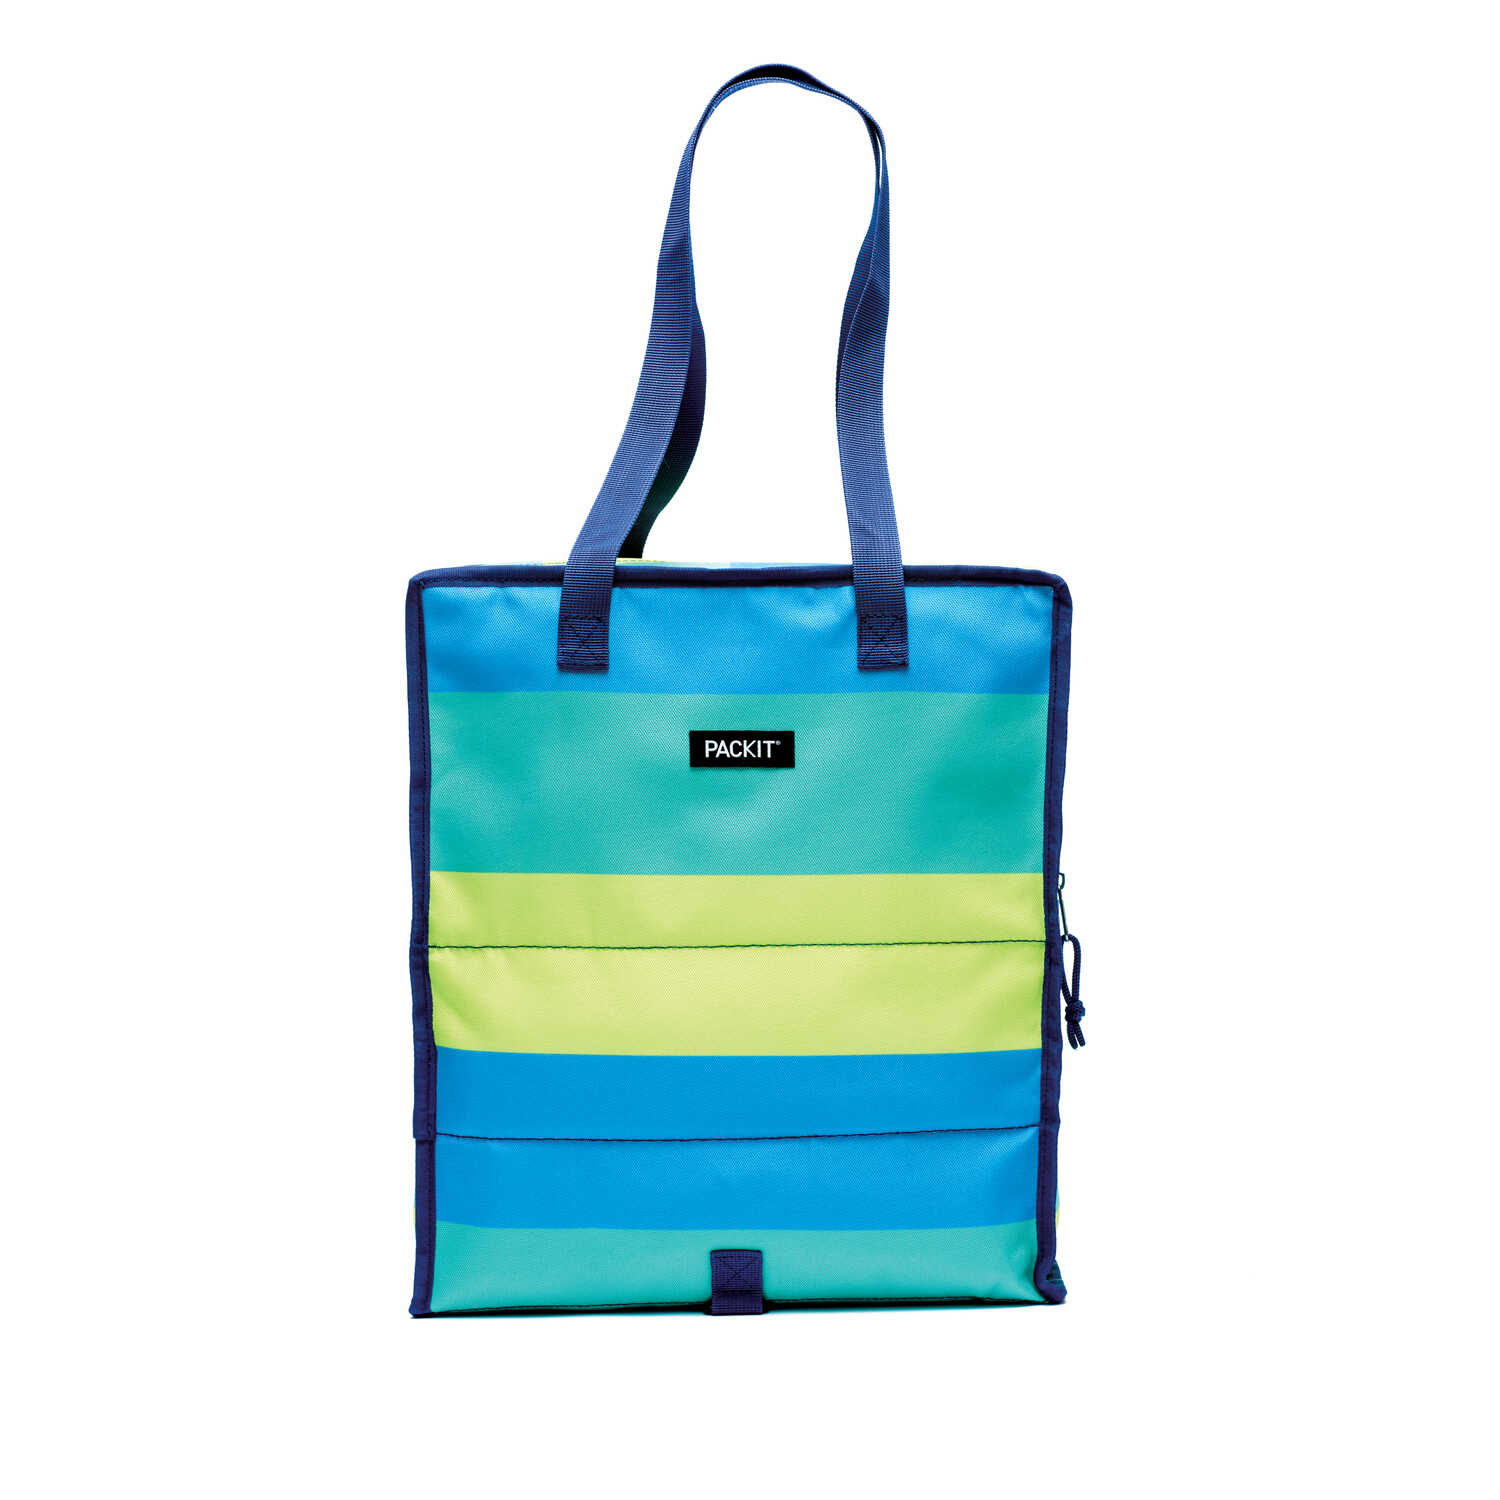 PACKiT  23 L Lunch Bag Cooler  Multicolored